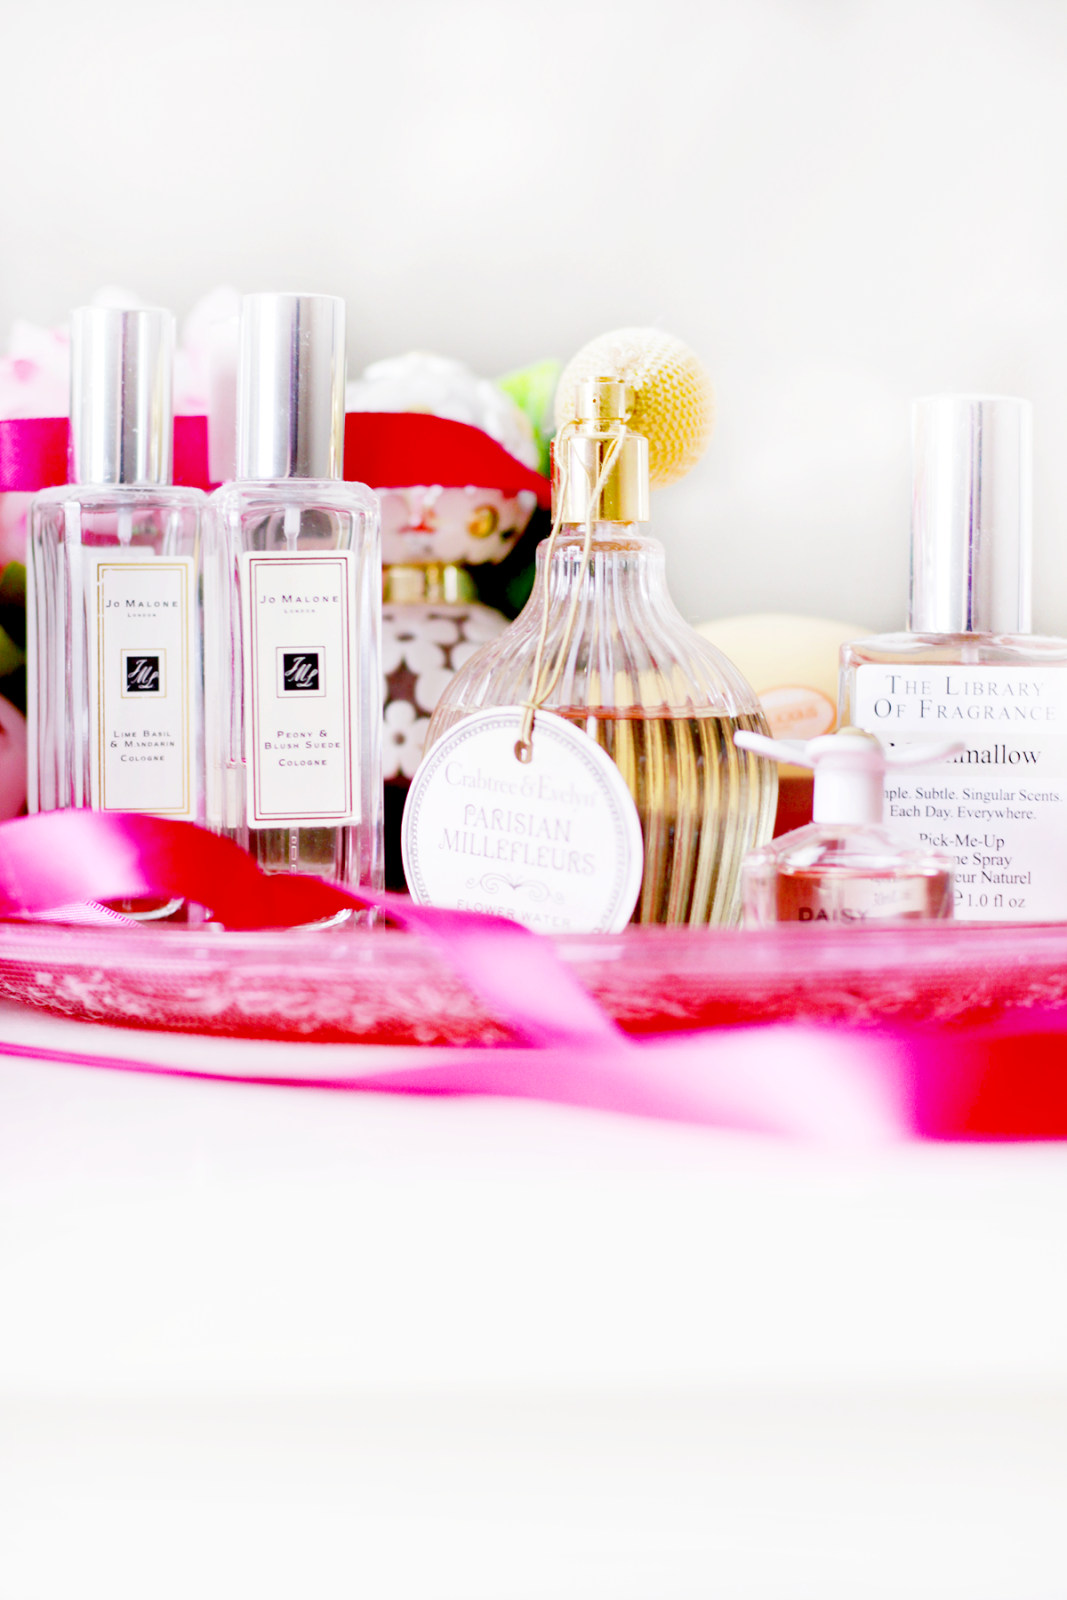 An image of my spring fragrance collection